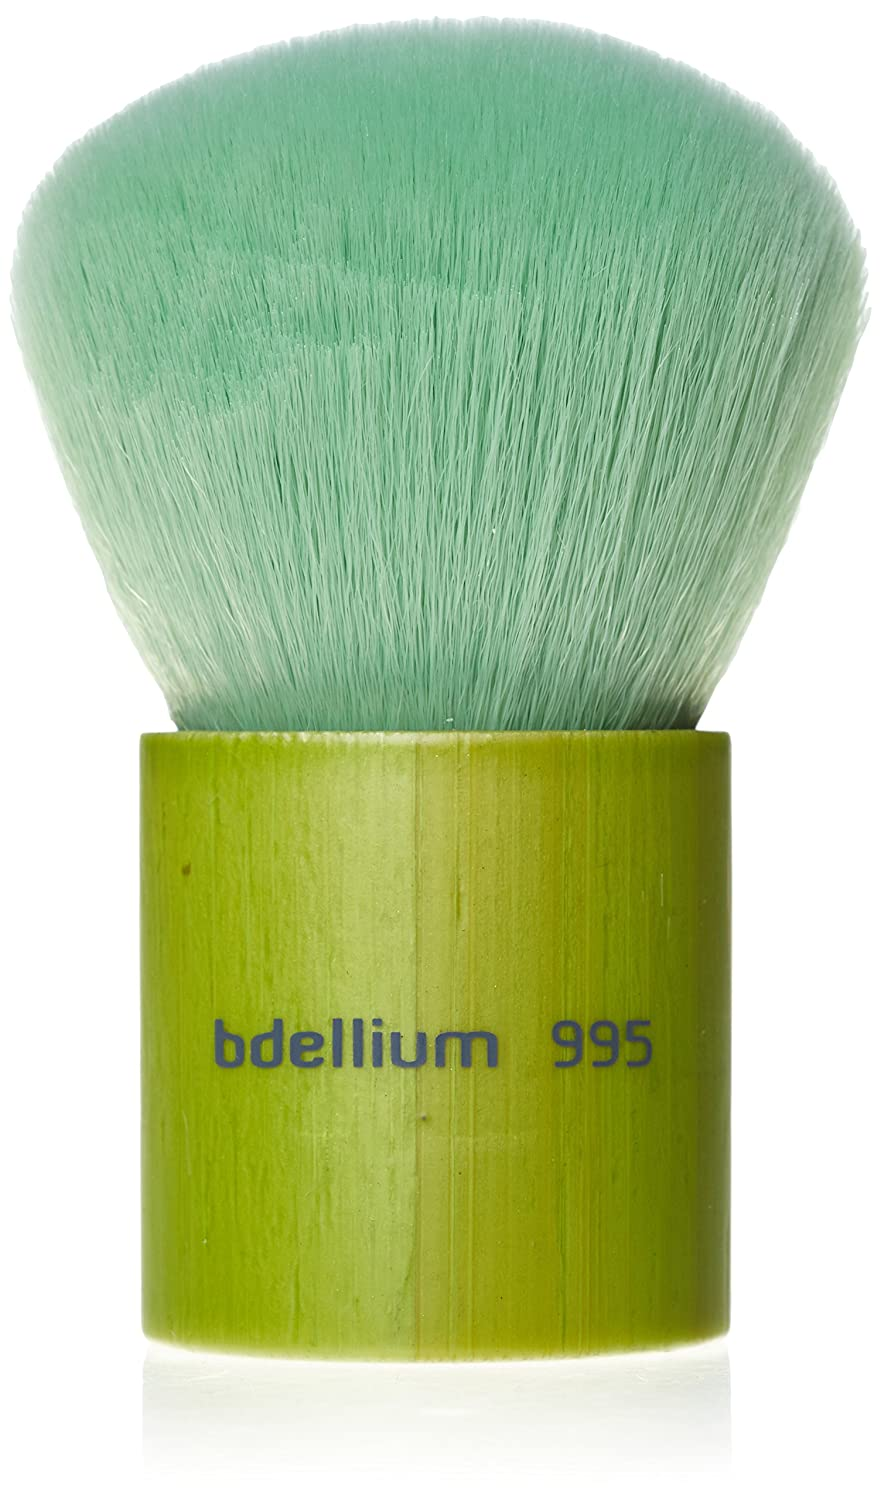 Bdellium Tools Professional Makeup Brush Green Bambu Series Kabuki 995, 1 Count BD-BAMBU-995